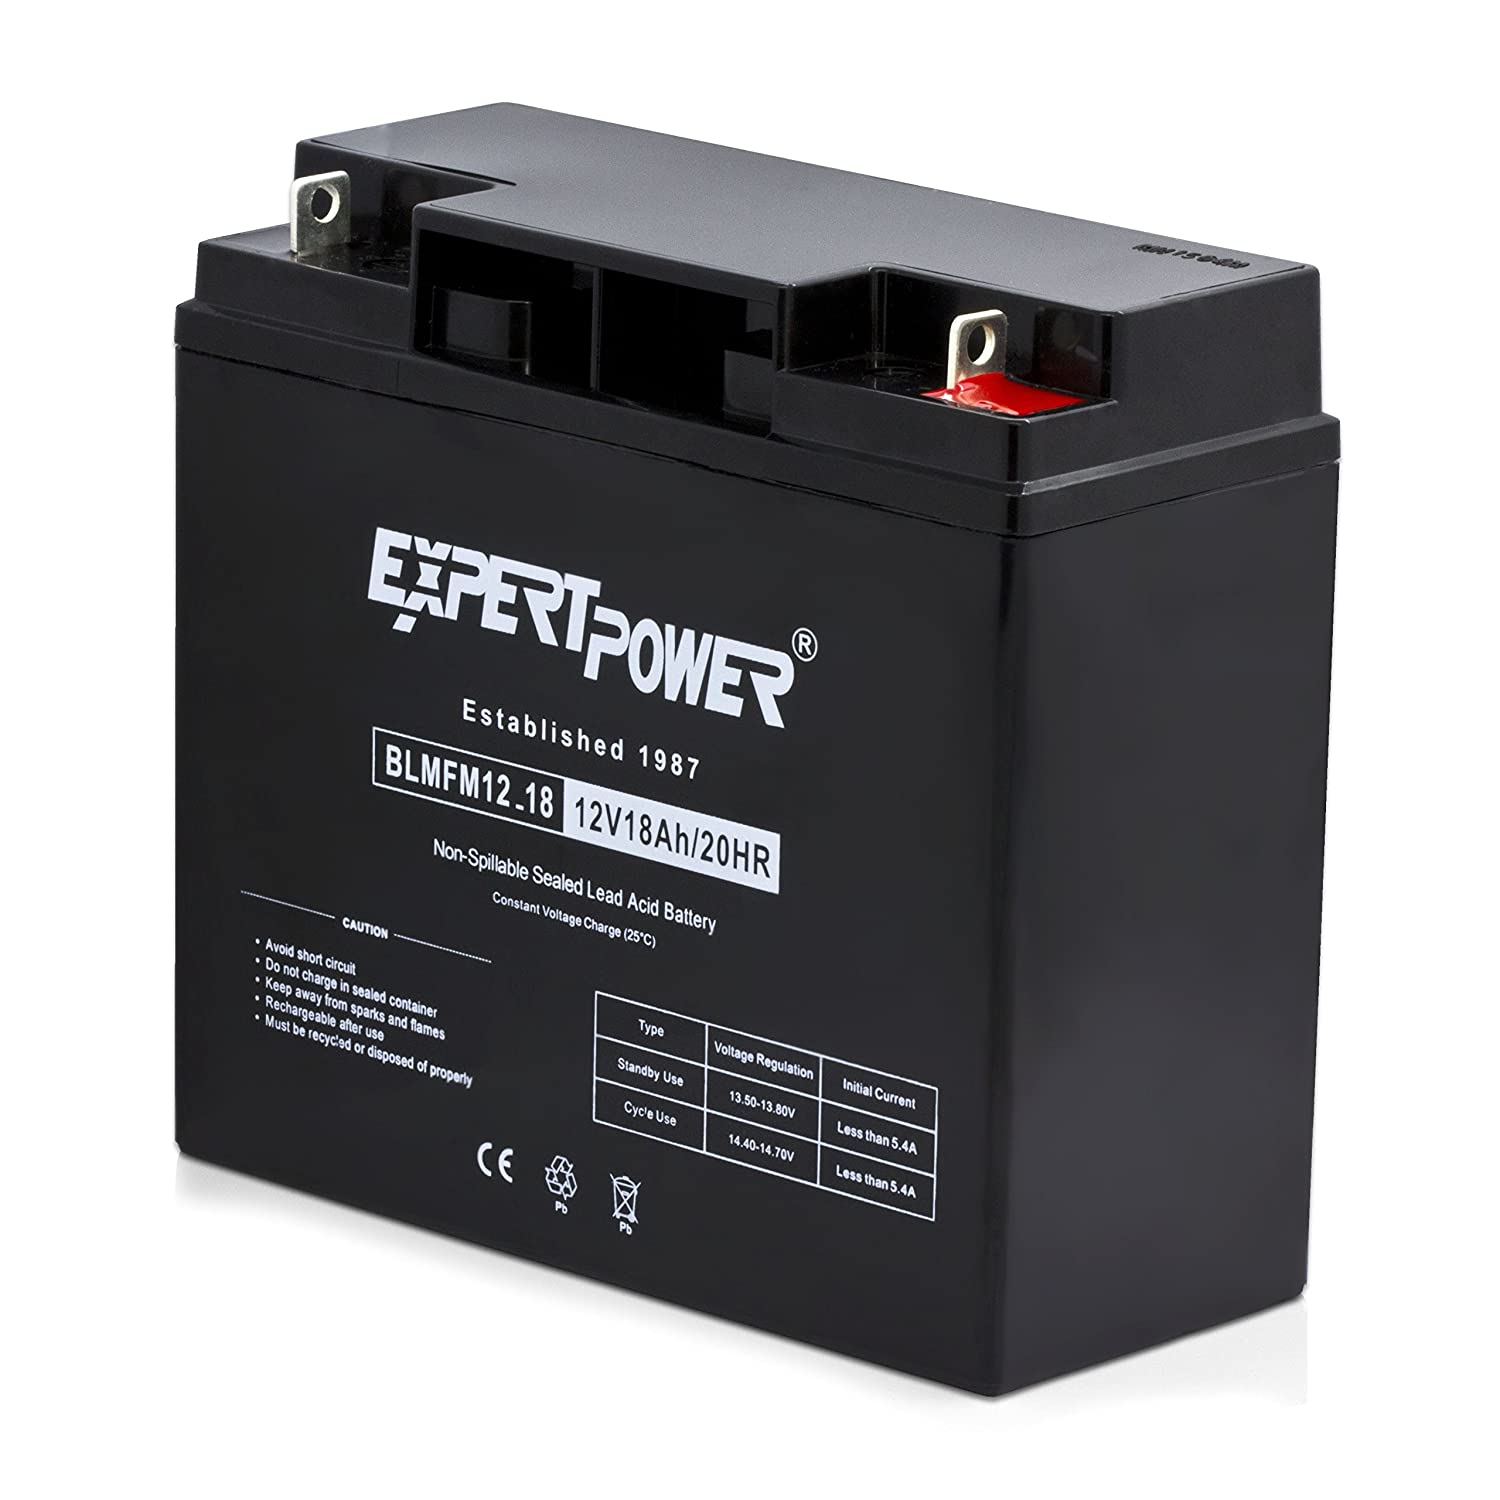 exide battery charger wiring diagram exide image exide battery charger wiring diagram 07 100 exide automotive on exide battery charger wiring diagram